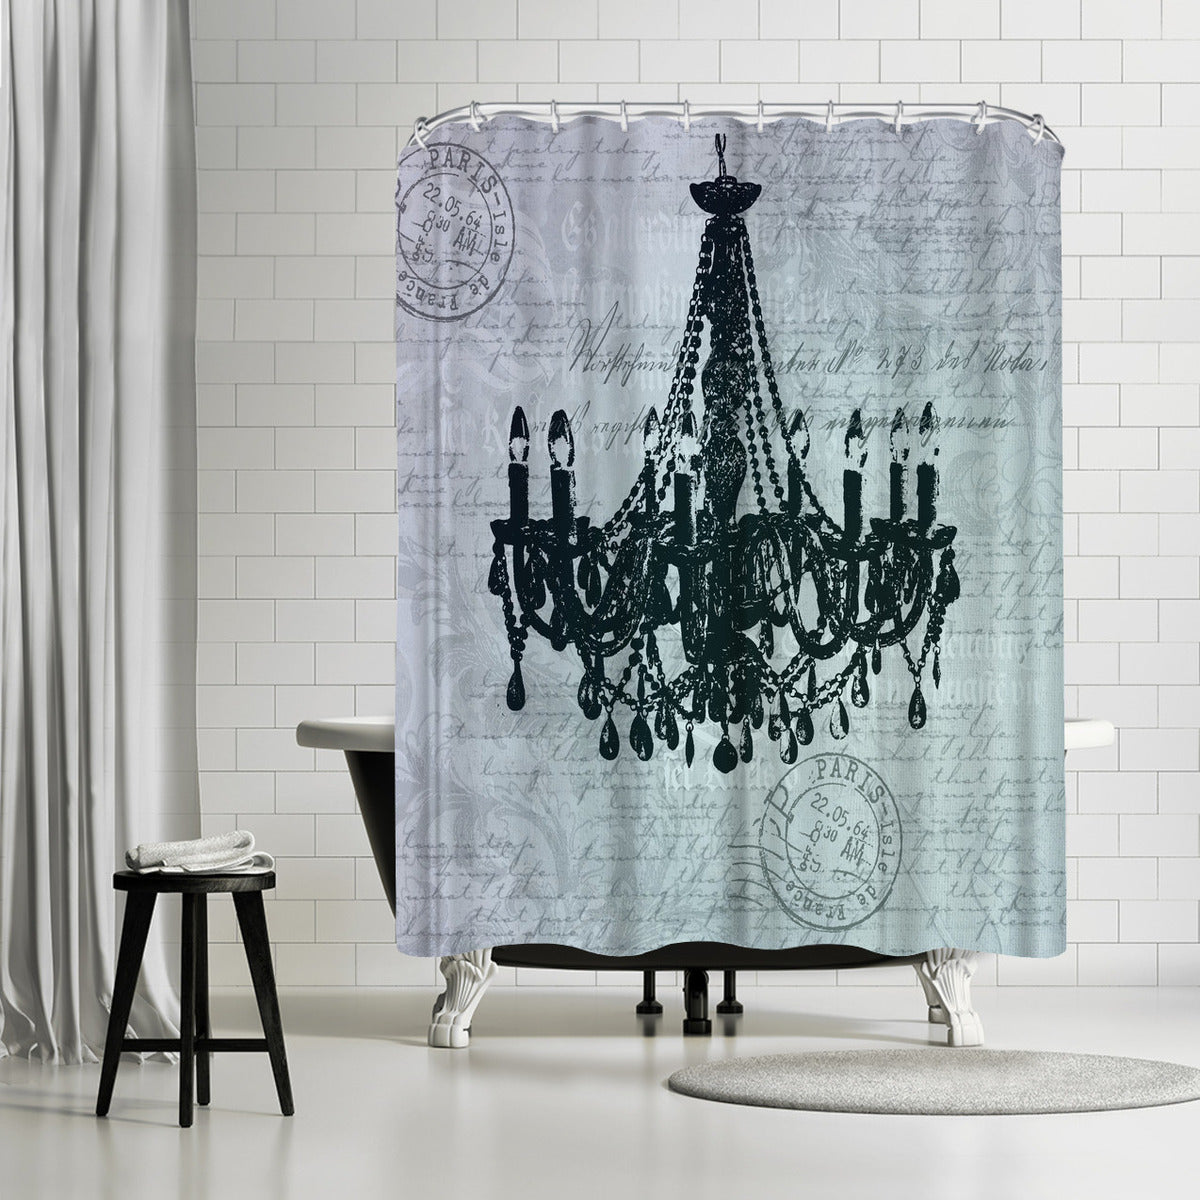 Teal Baroque Chandelier by Lebens Art Shower Curtain - Shower Curtain - Americanflat